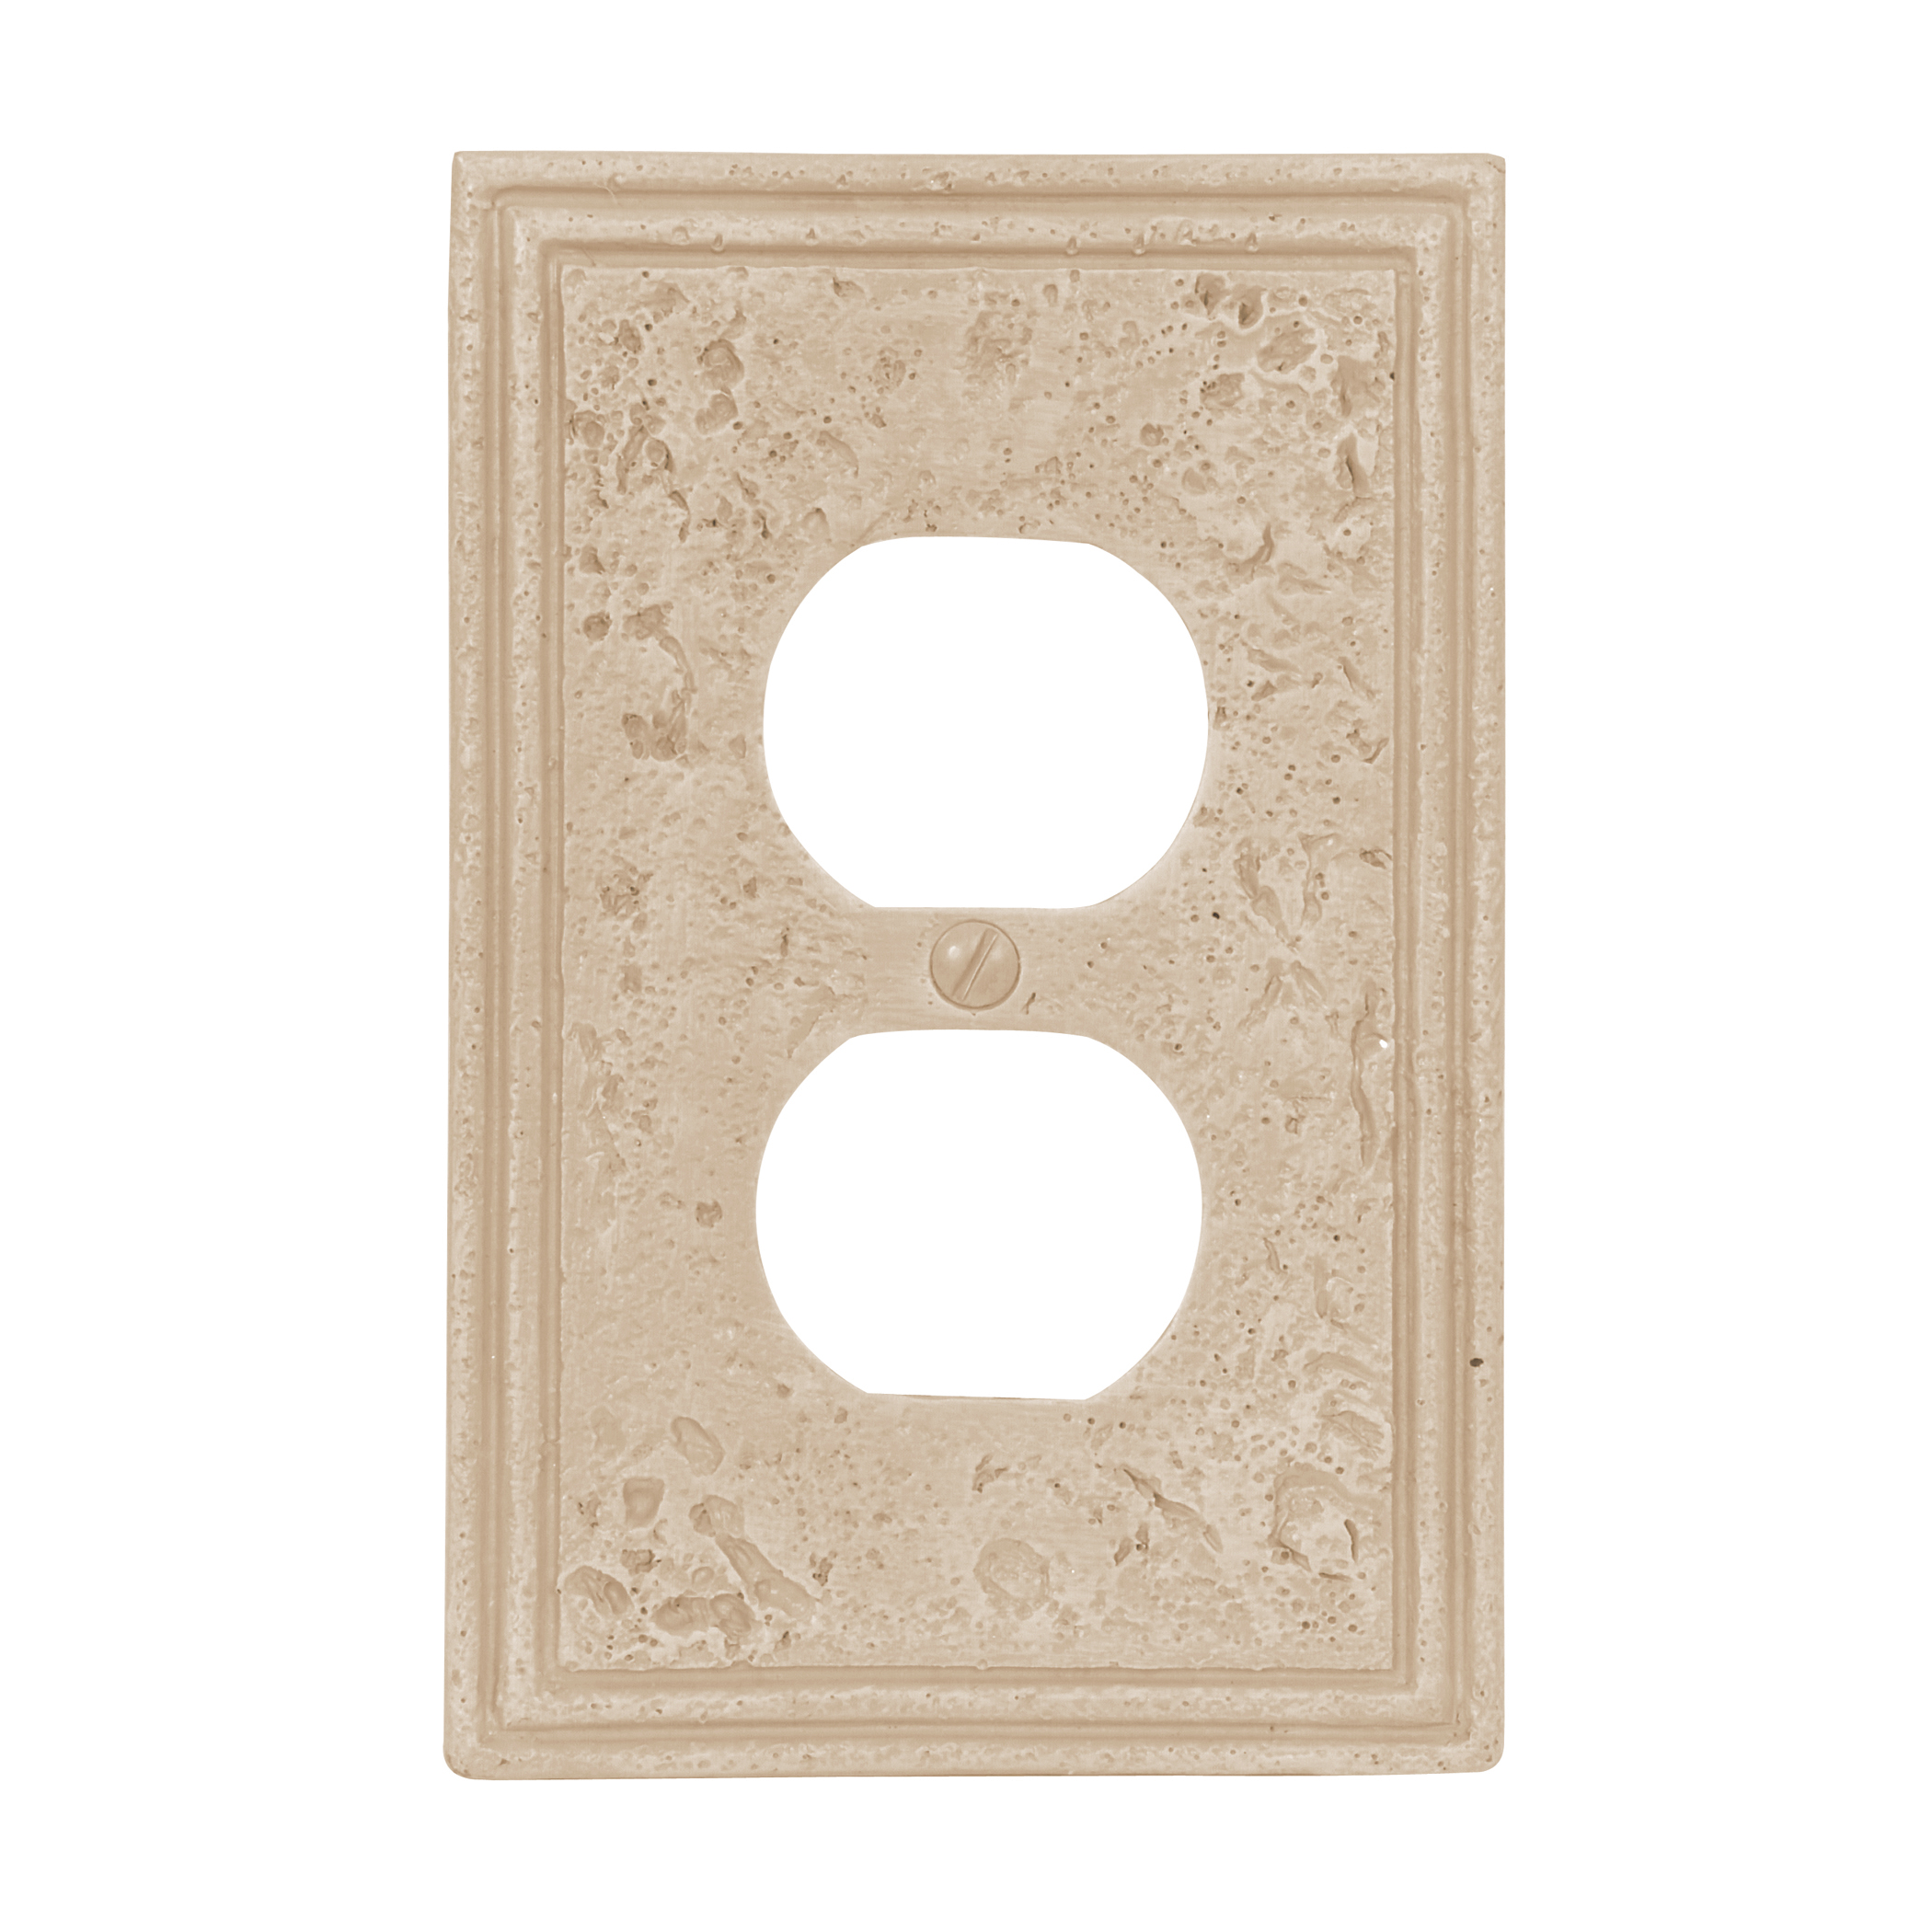 Faux Stone Travertine Textured Stone Resin Switch Plate U0026 Outlet Covers